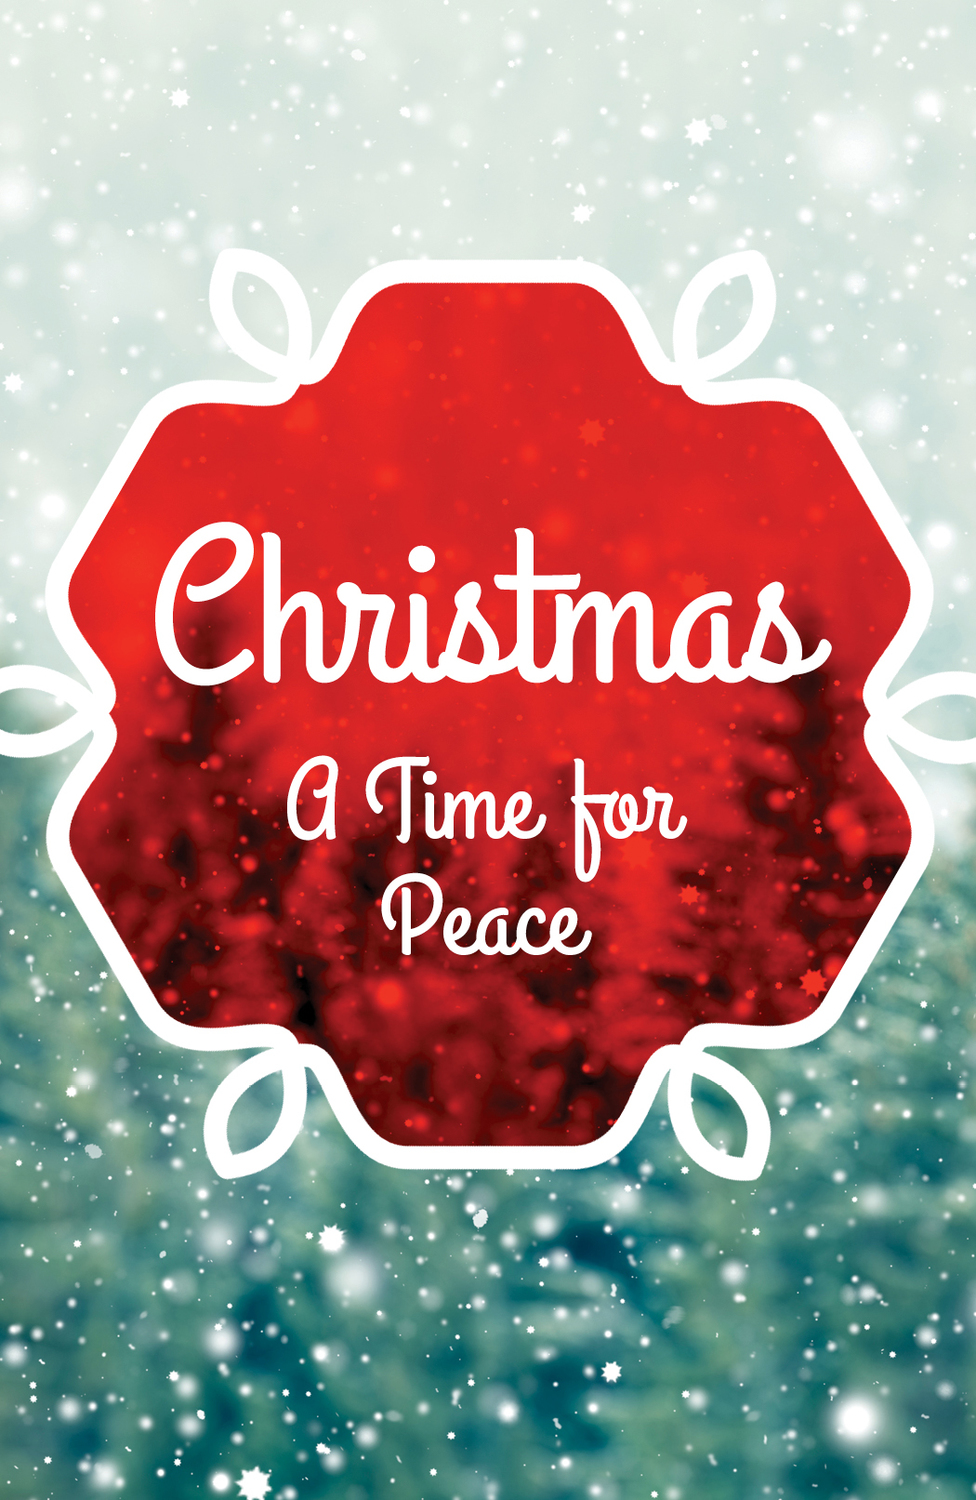 Christmas: A Time for Peace